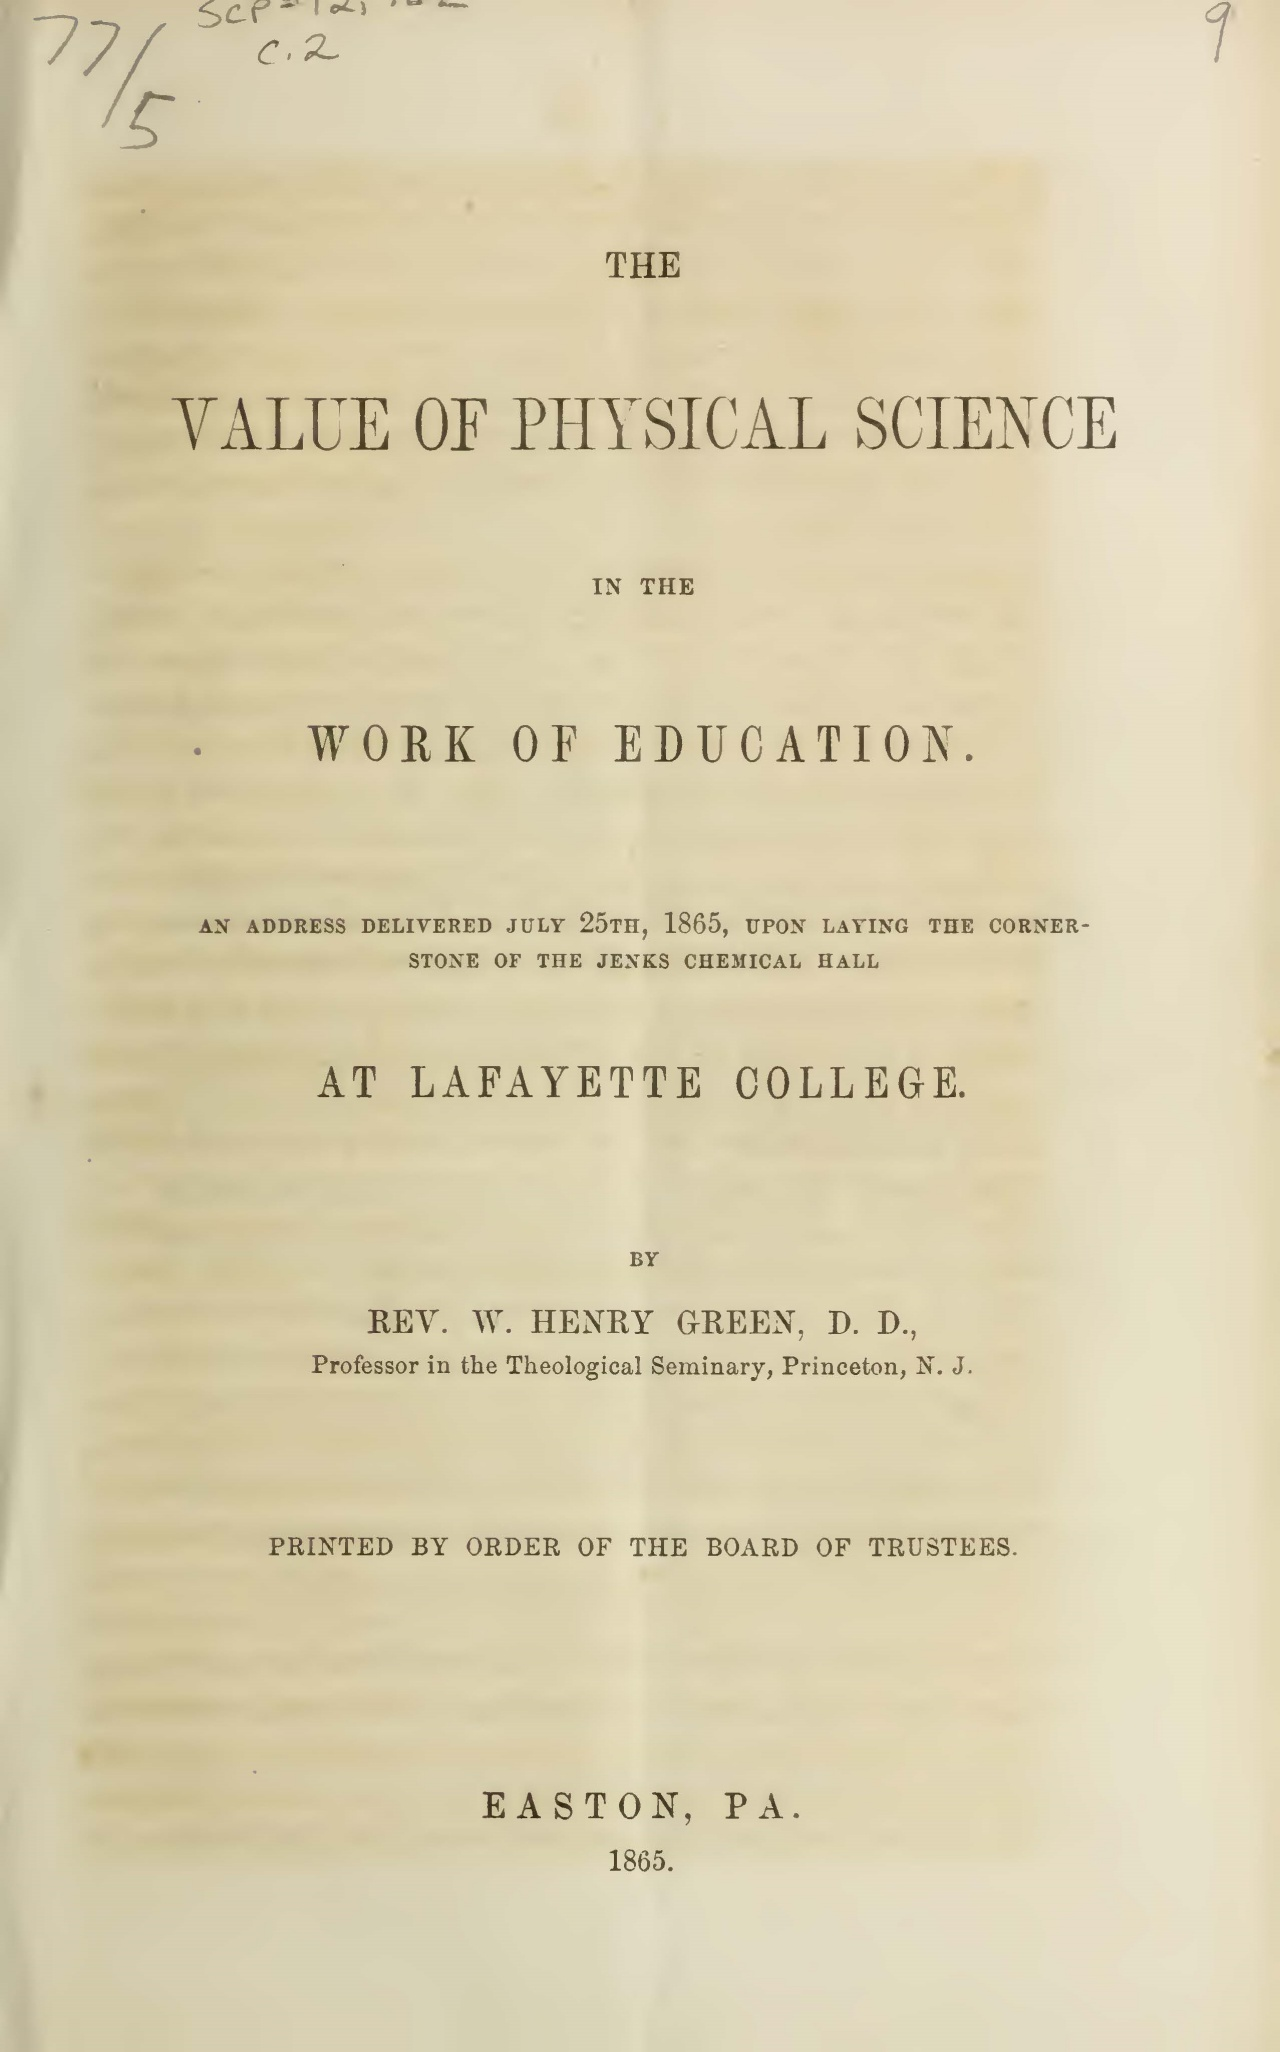 Green, William Henry, The Value of Physical Science in the Work of Education Title Page.jpg